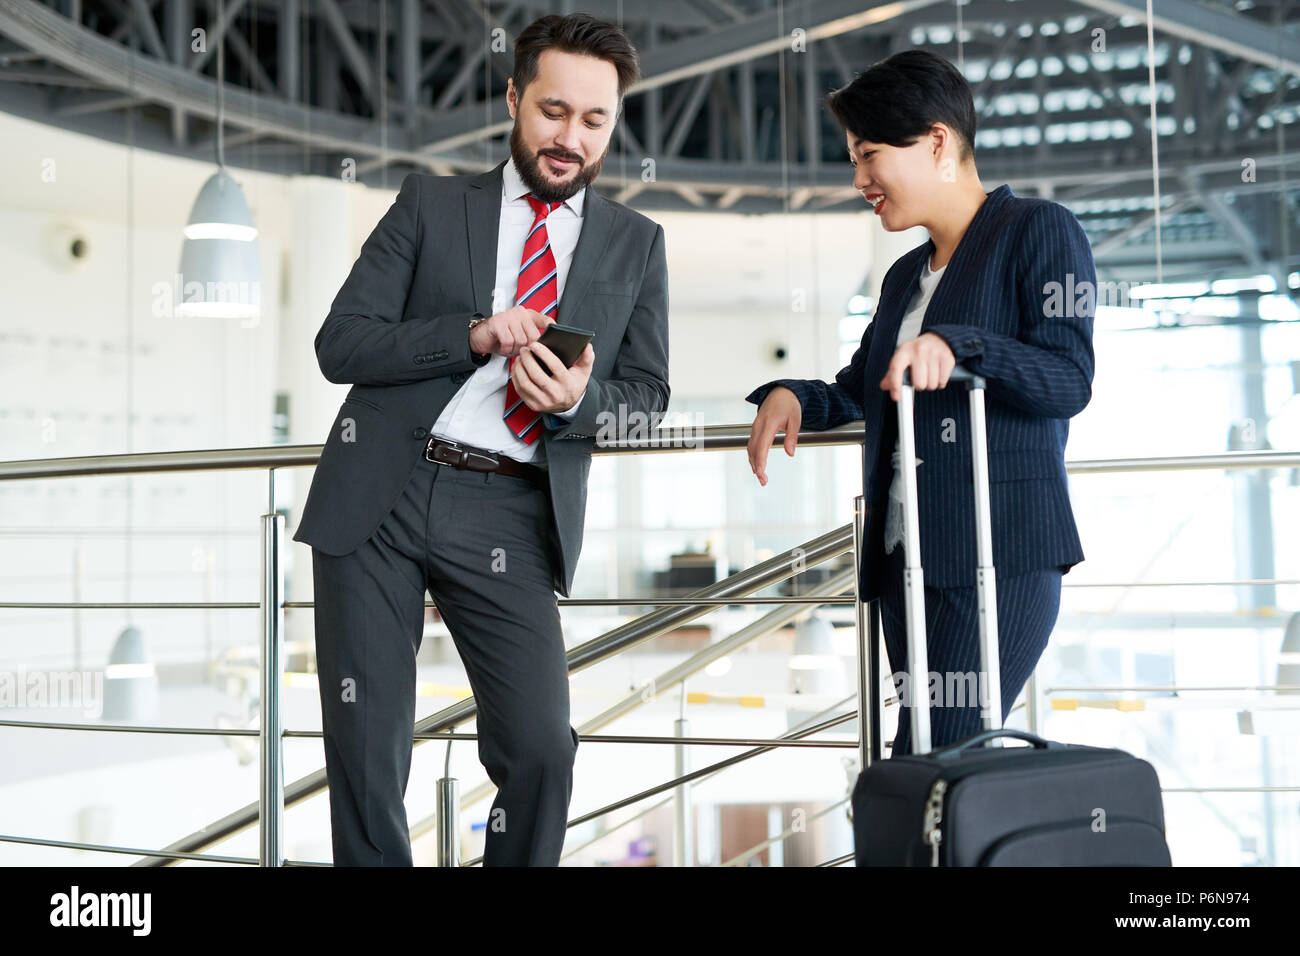 Business travel - Stock Image